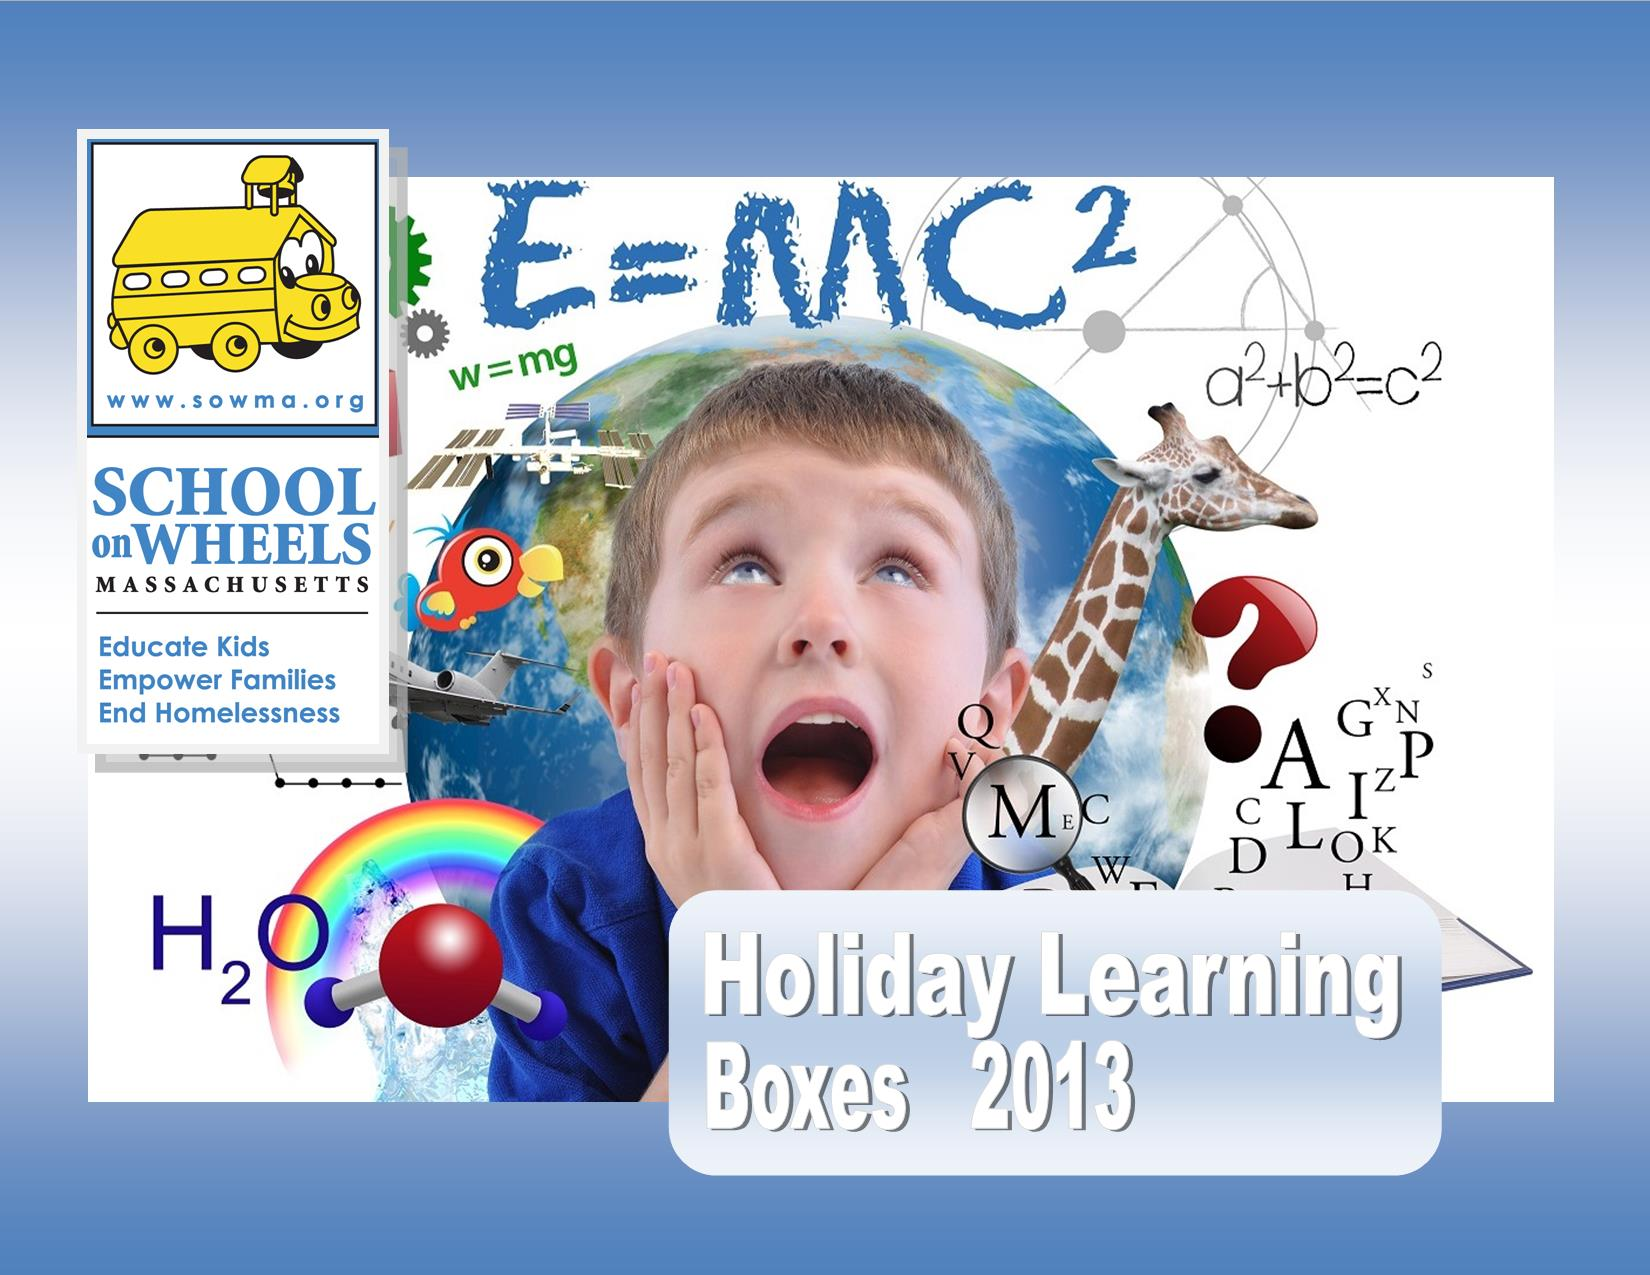 holiday learning boxes - school on wheels of massachusetts